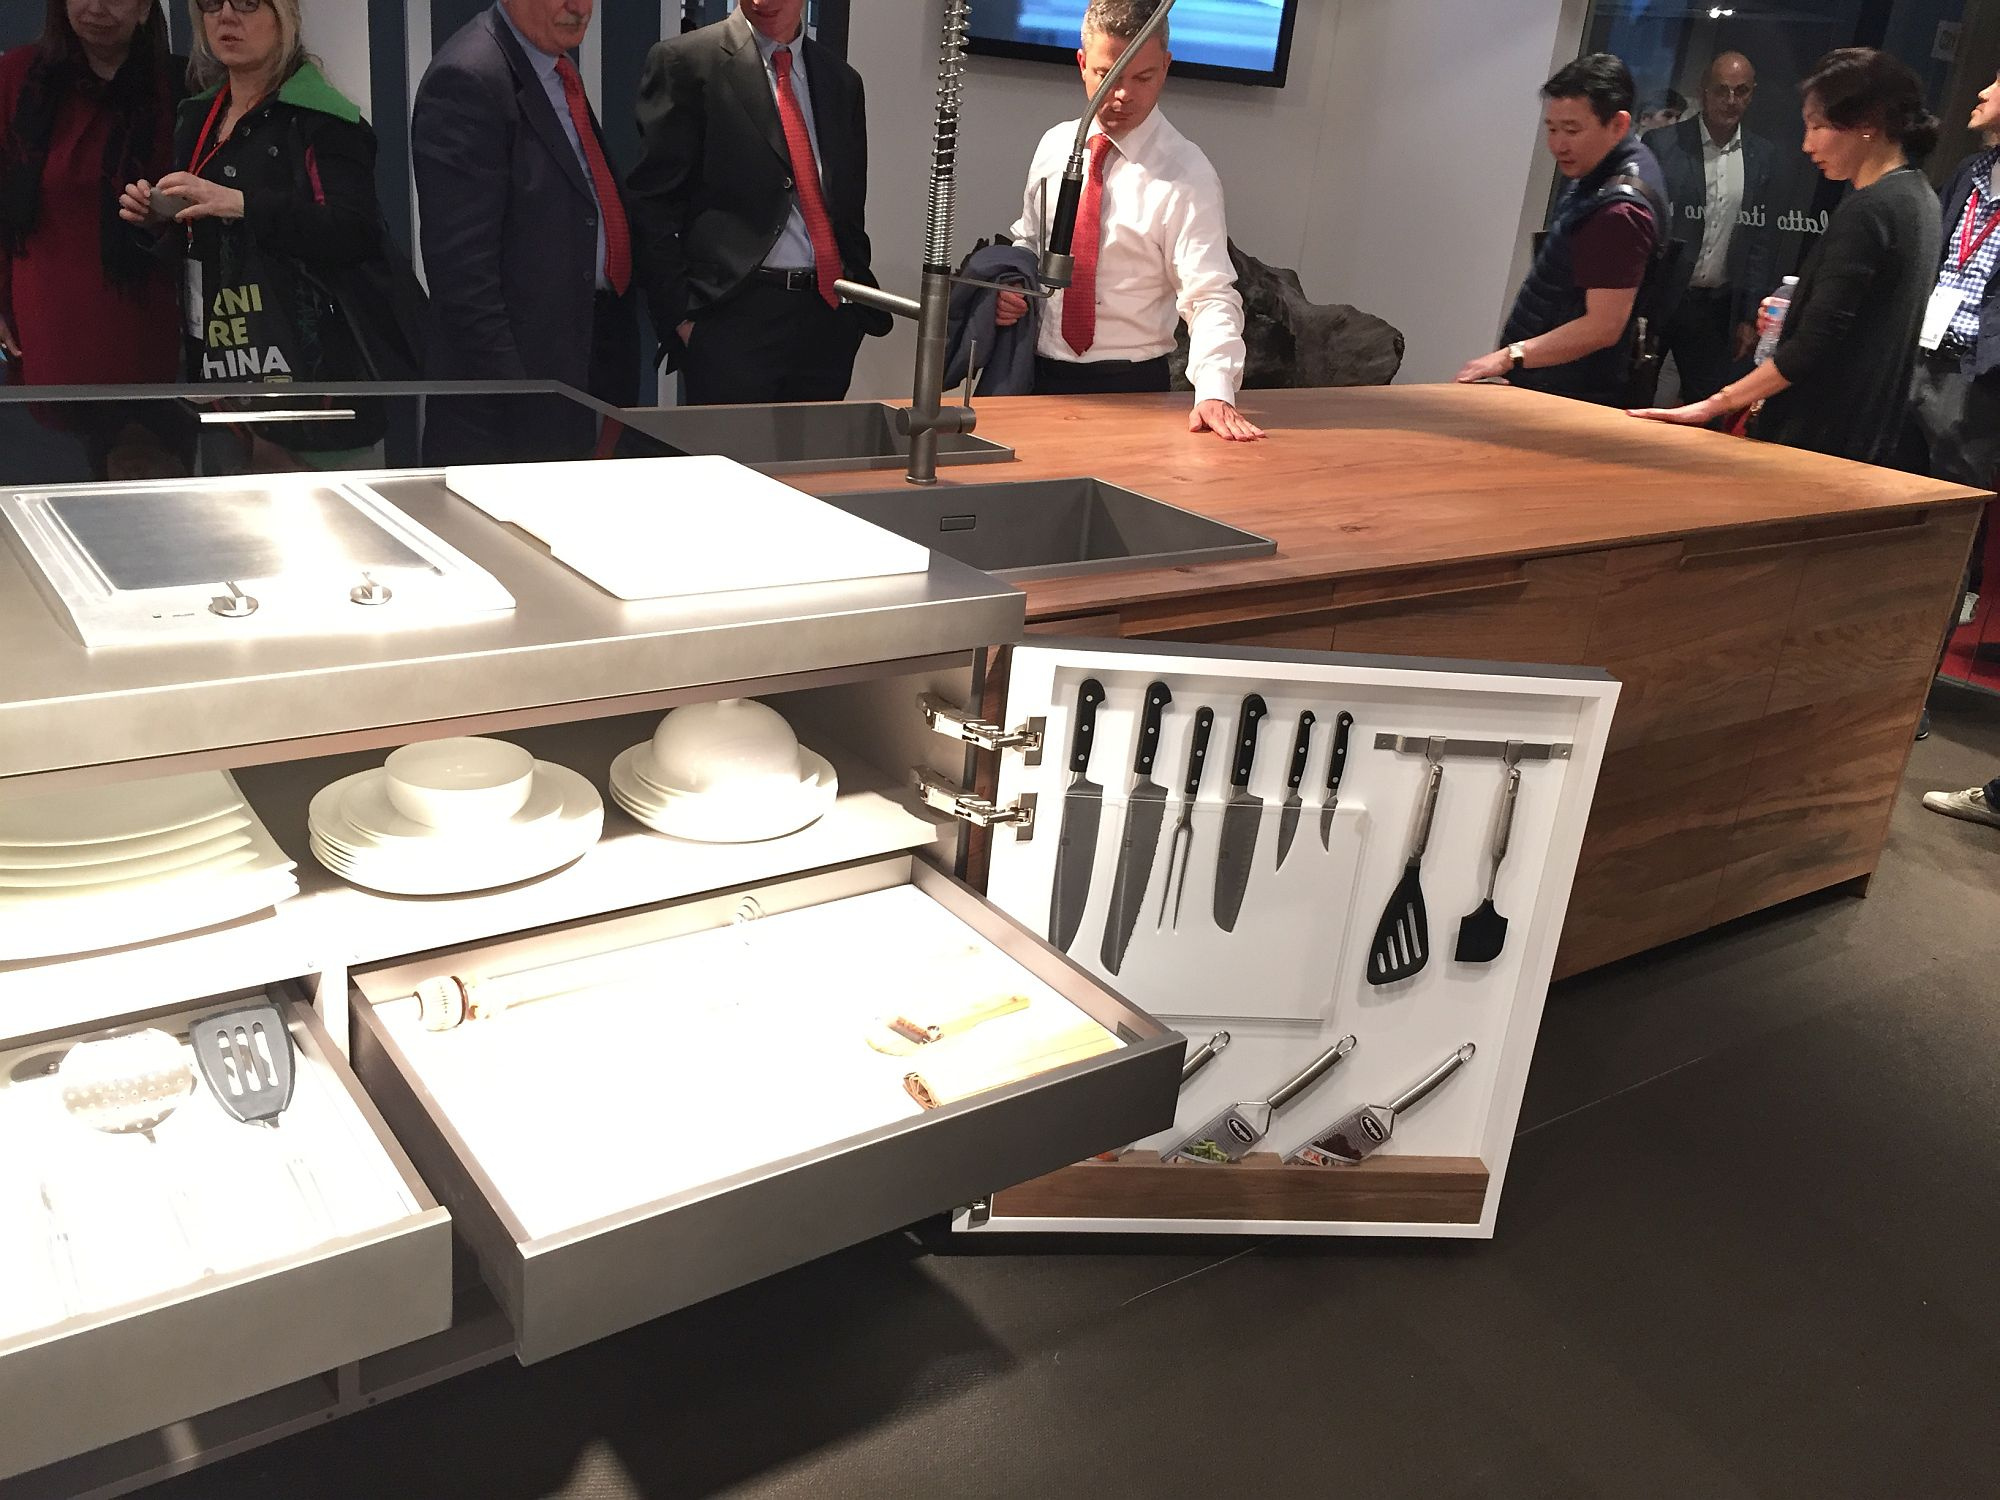 Invigorating Gallery Exclusive Kitchen Island Helps Tuck Away All Your Kitchenutensils Storage Kitchen Islands Islands Images Kitchens Cabinets Kitchens Islands Tables View kitchen Kitchens With Islands